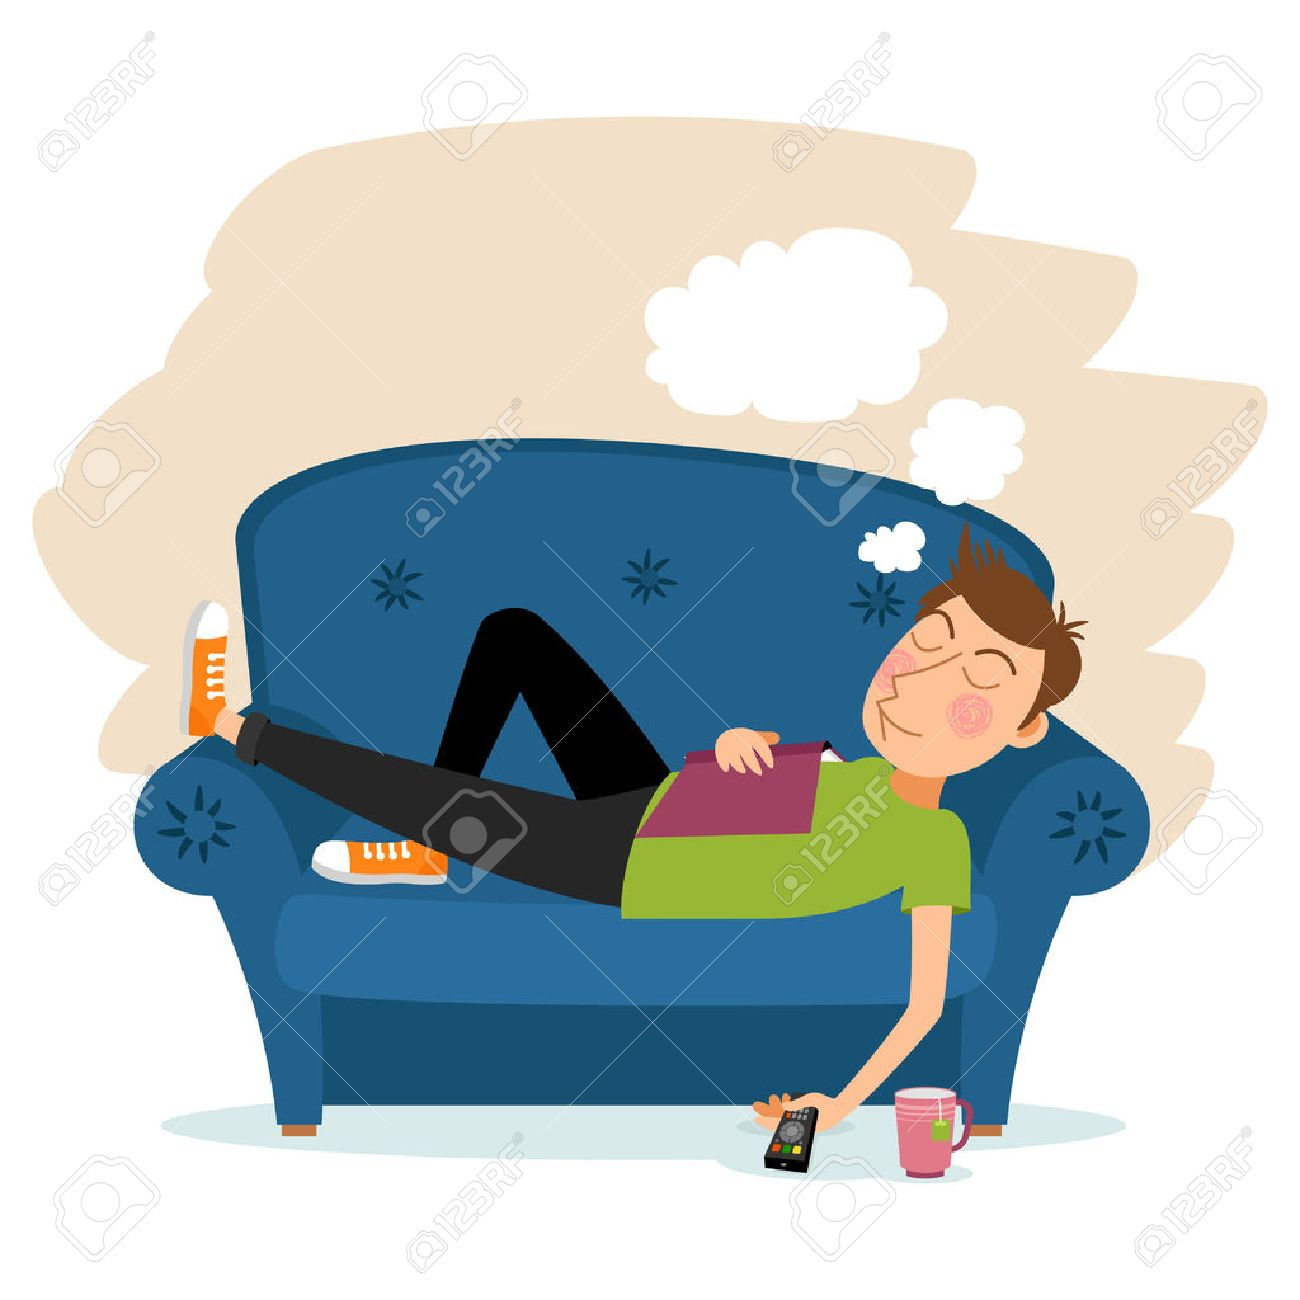 Man sleeping on couch clipart » Clipart Station.